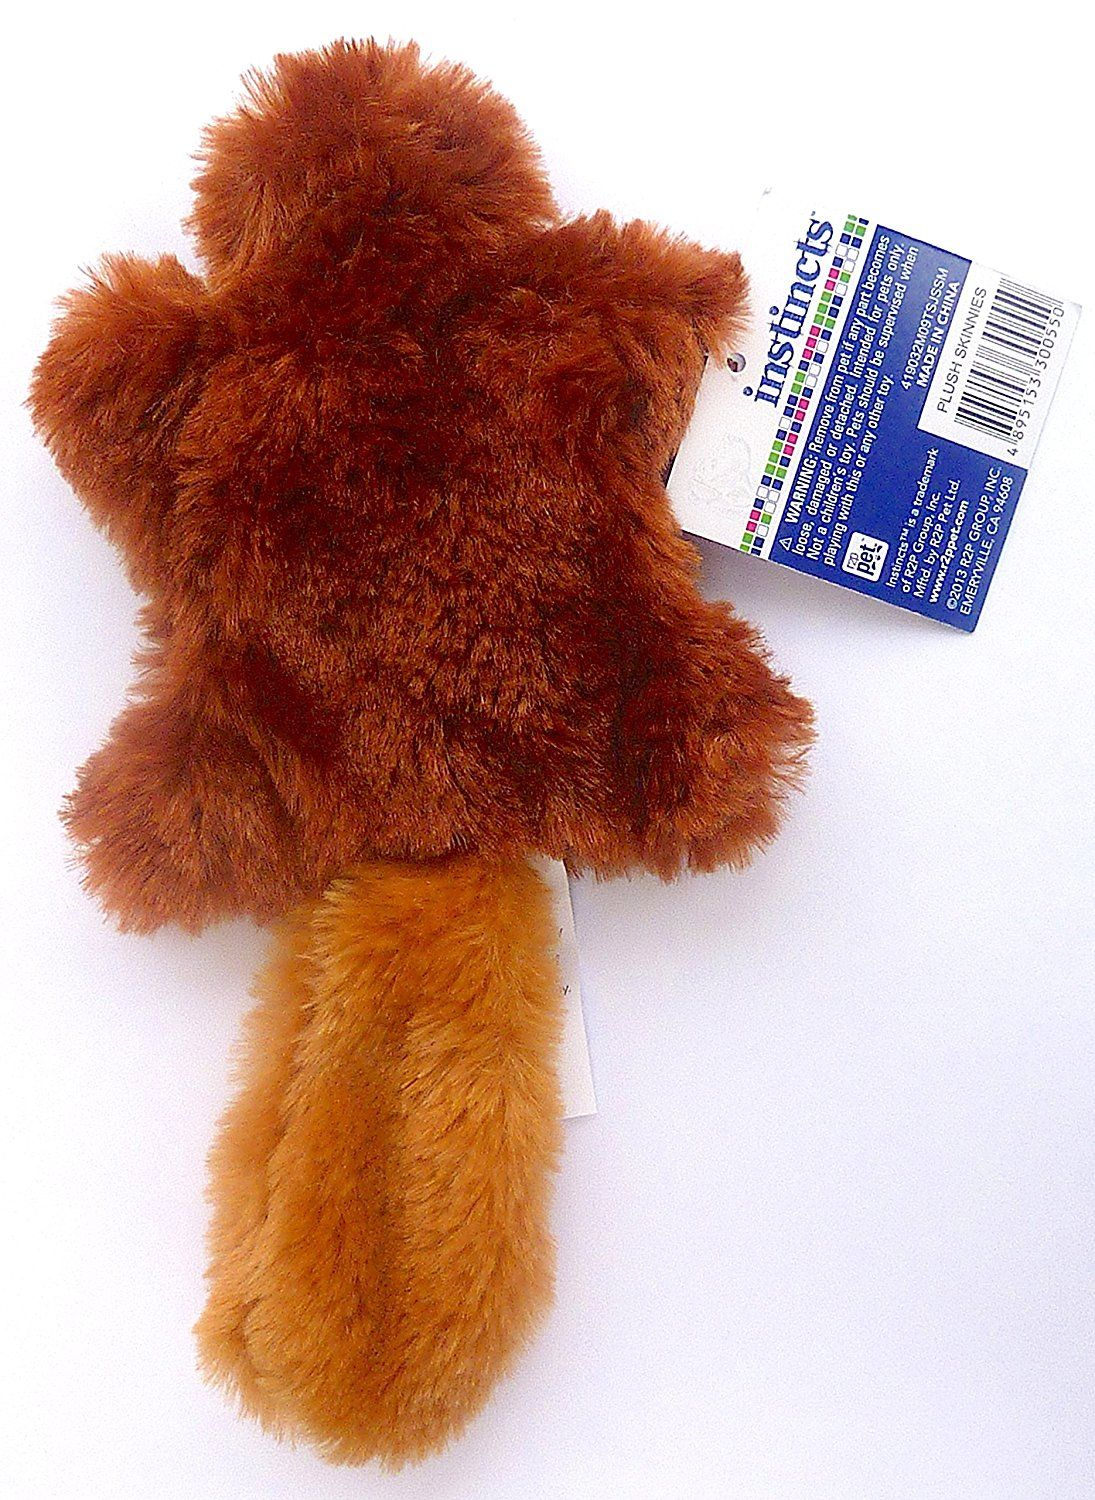 Instincts Plush Skinnies Squeaky Pet Toy Small Beaver Read